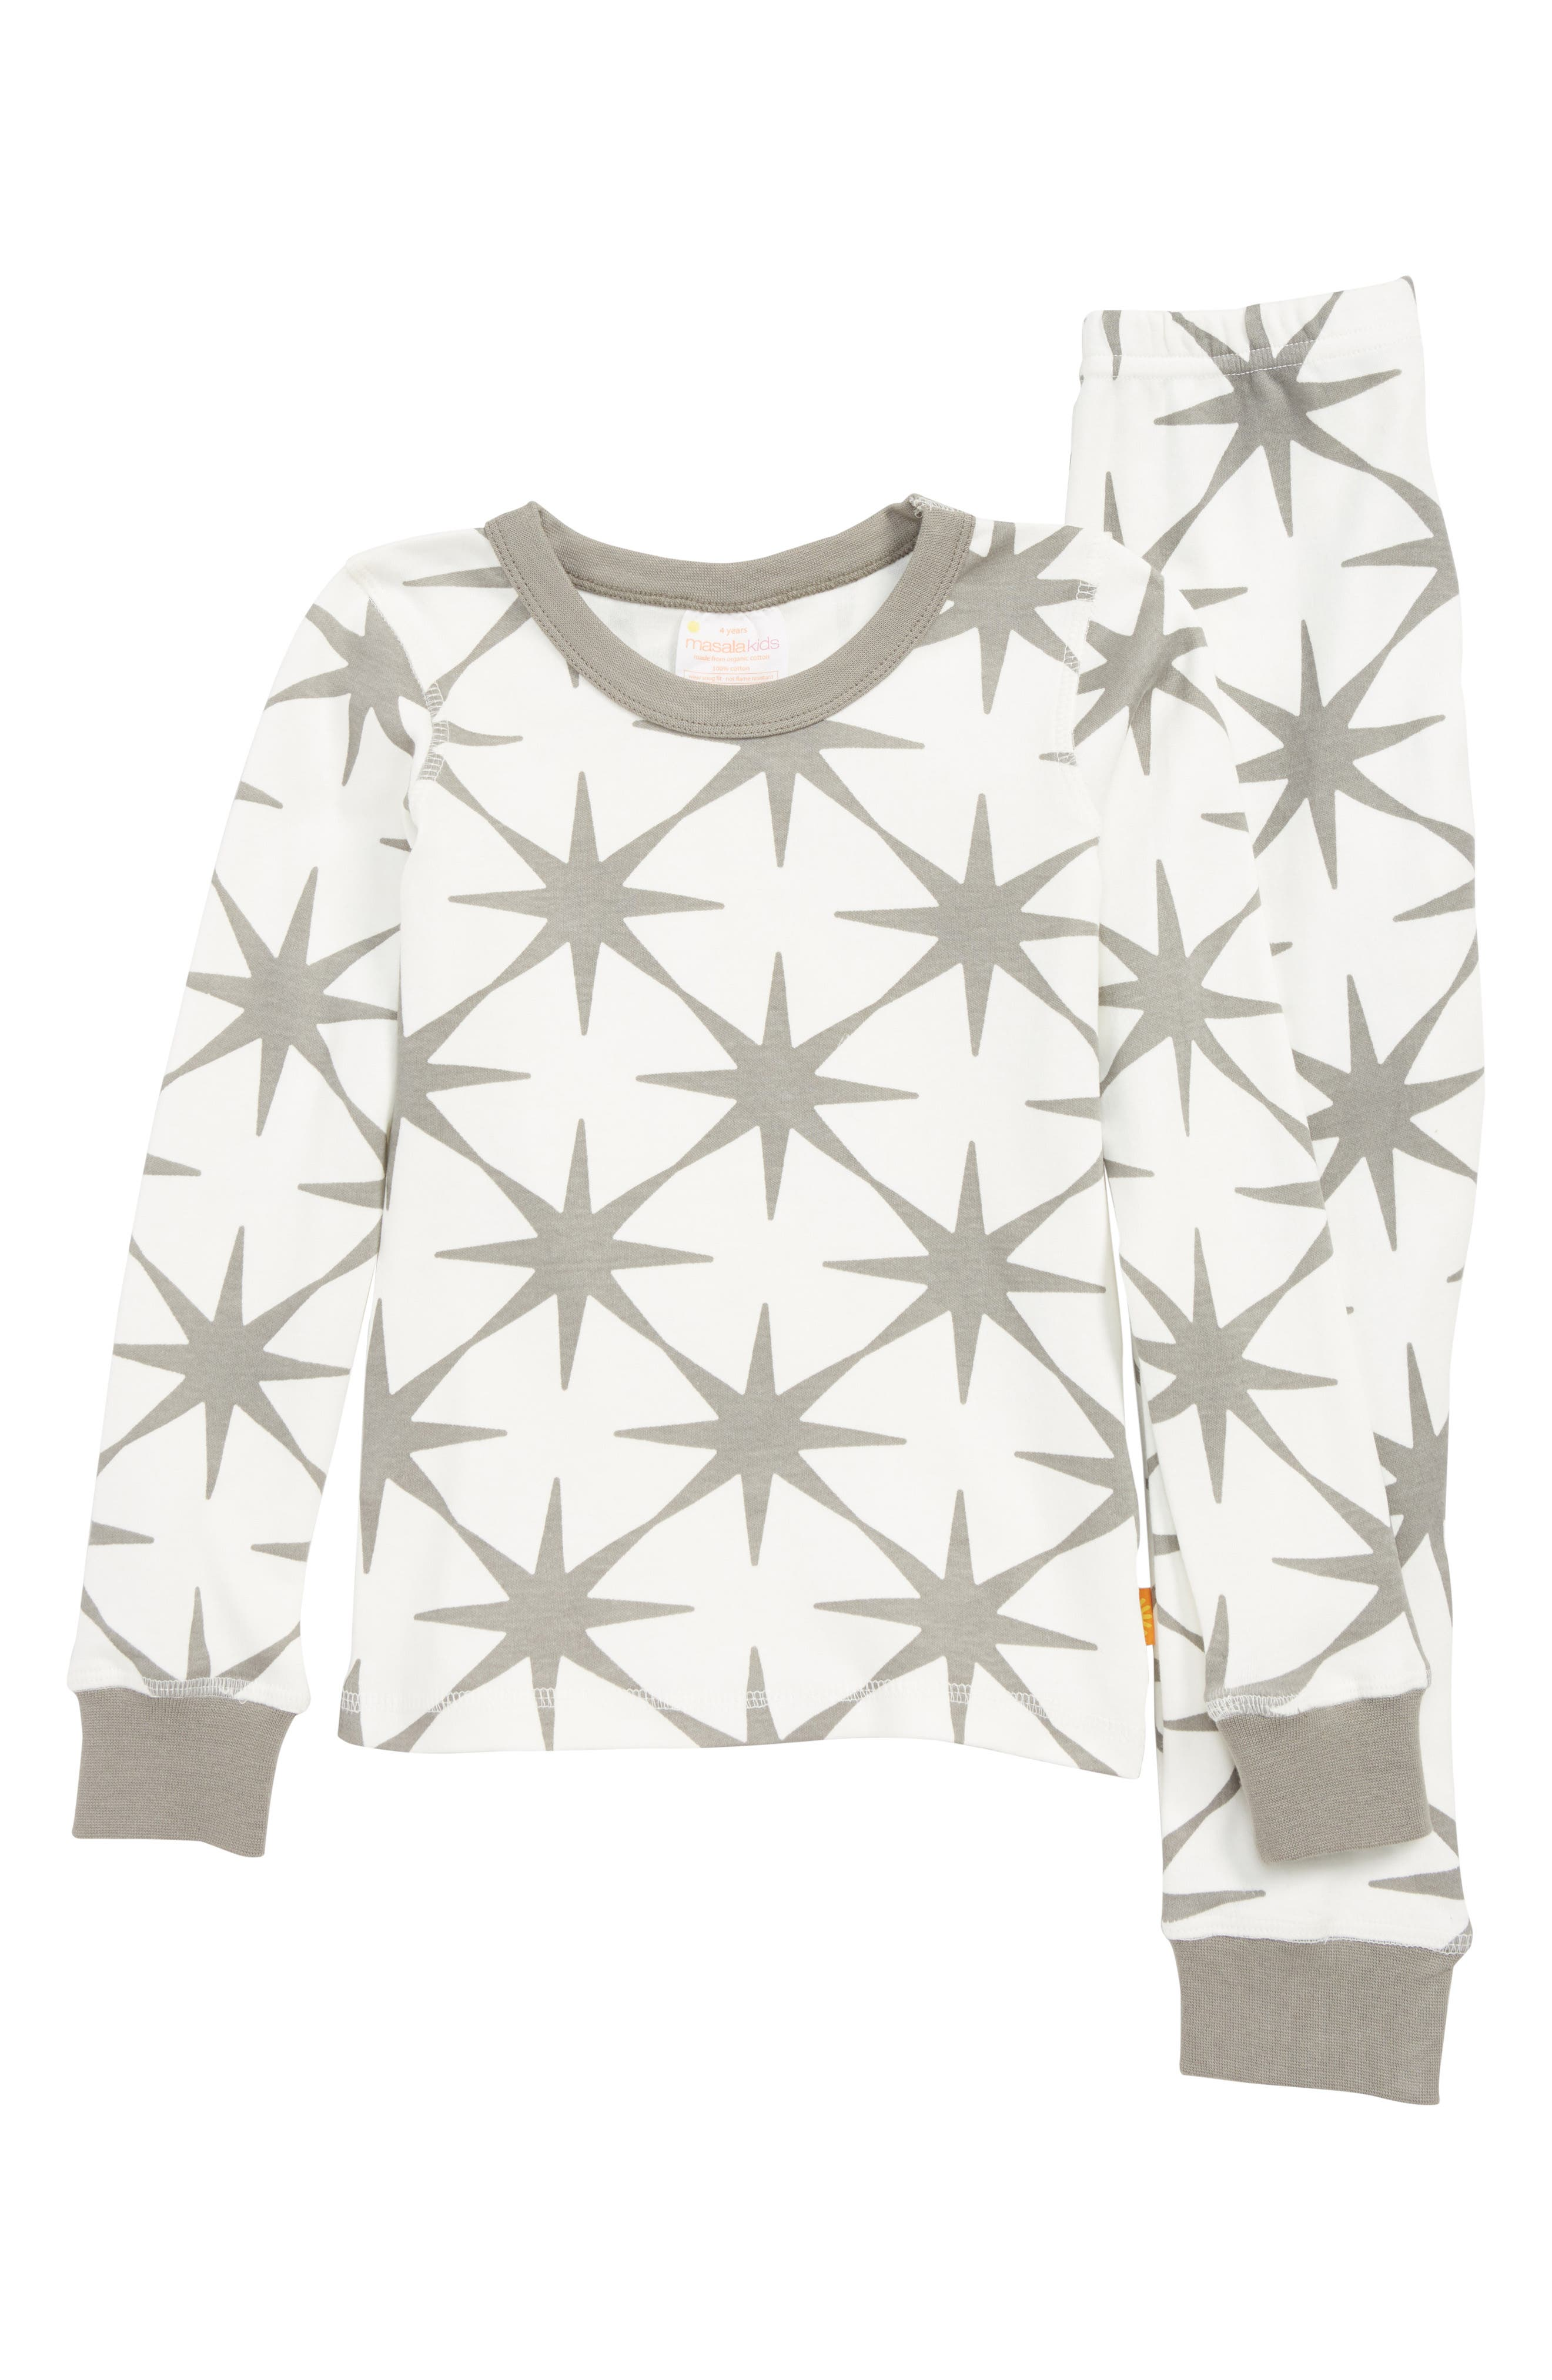 Stars Organic Cotton Fitted Two-Piece Pajamas,                             Main thumbnail 1, color,                             GREY